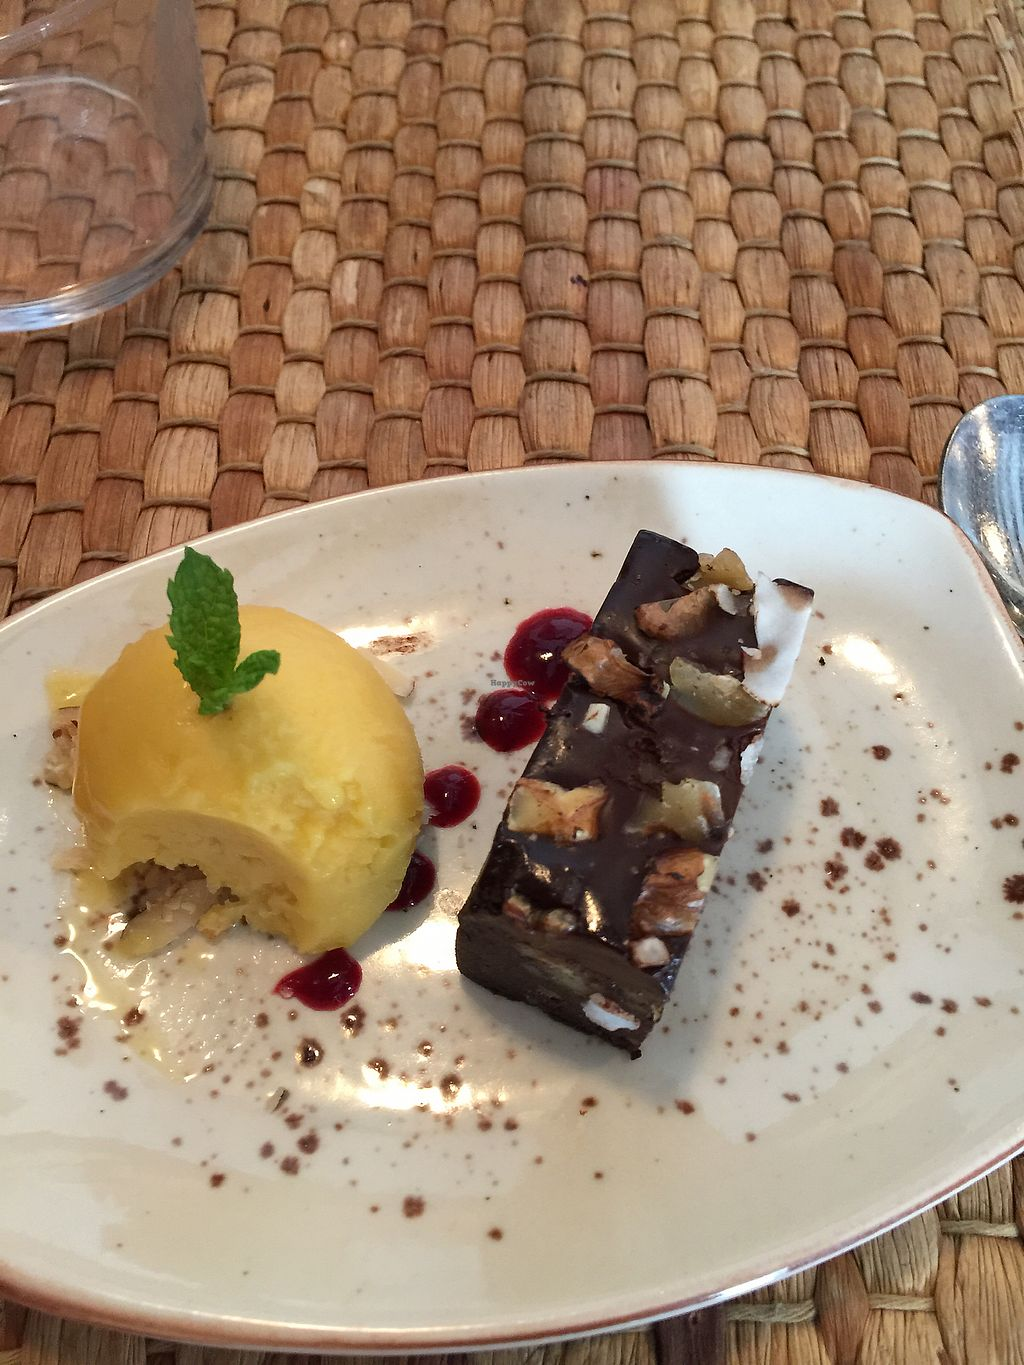 """Photo of Duke Restaurant  by <a href=""""/members/profile/anabelucha"""">anabelucha</a> <br/>decadent vegan brownie with mango ice cream ?  <br/> August 23, 2017  - <a href='/contact/abuse/image/99192/296189'>Report</a>"""